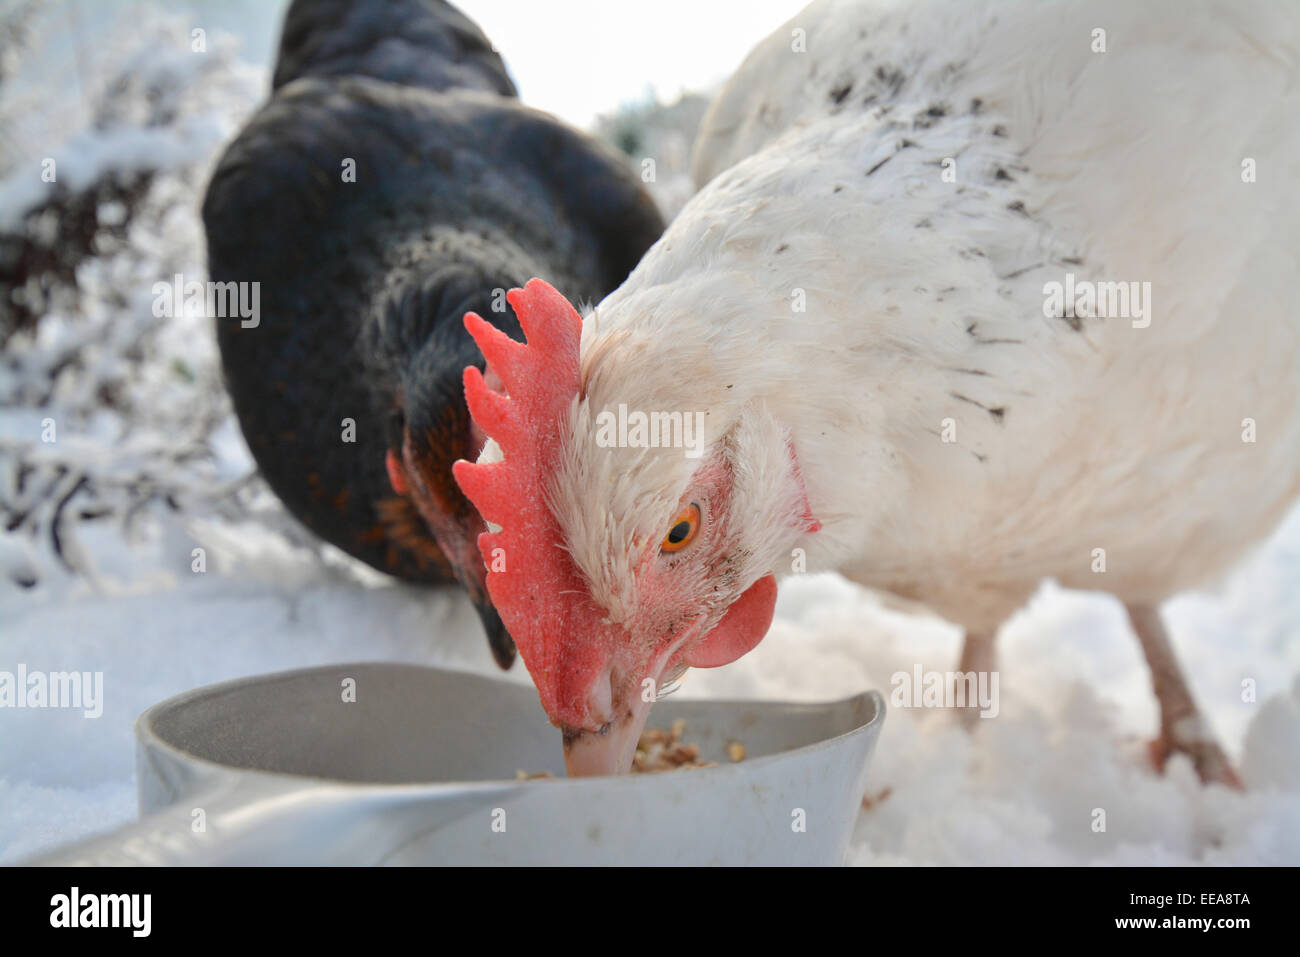 two domestic chickens eating grain in the snow - closeup Stock Photo